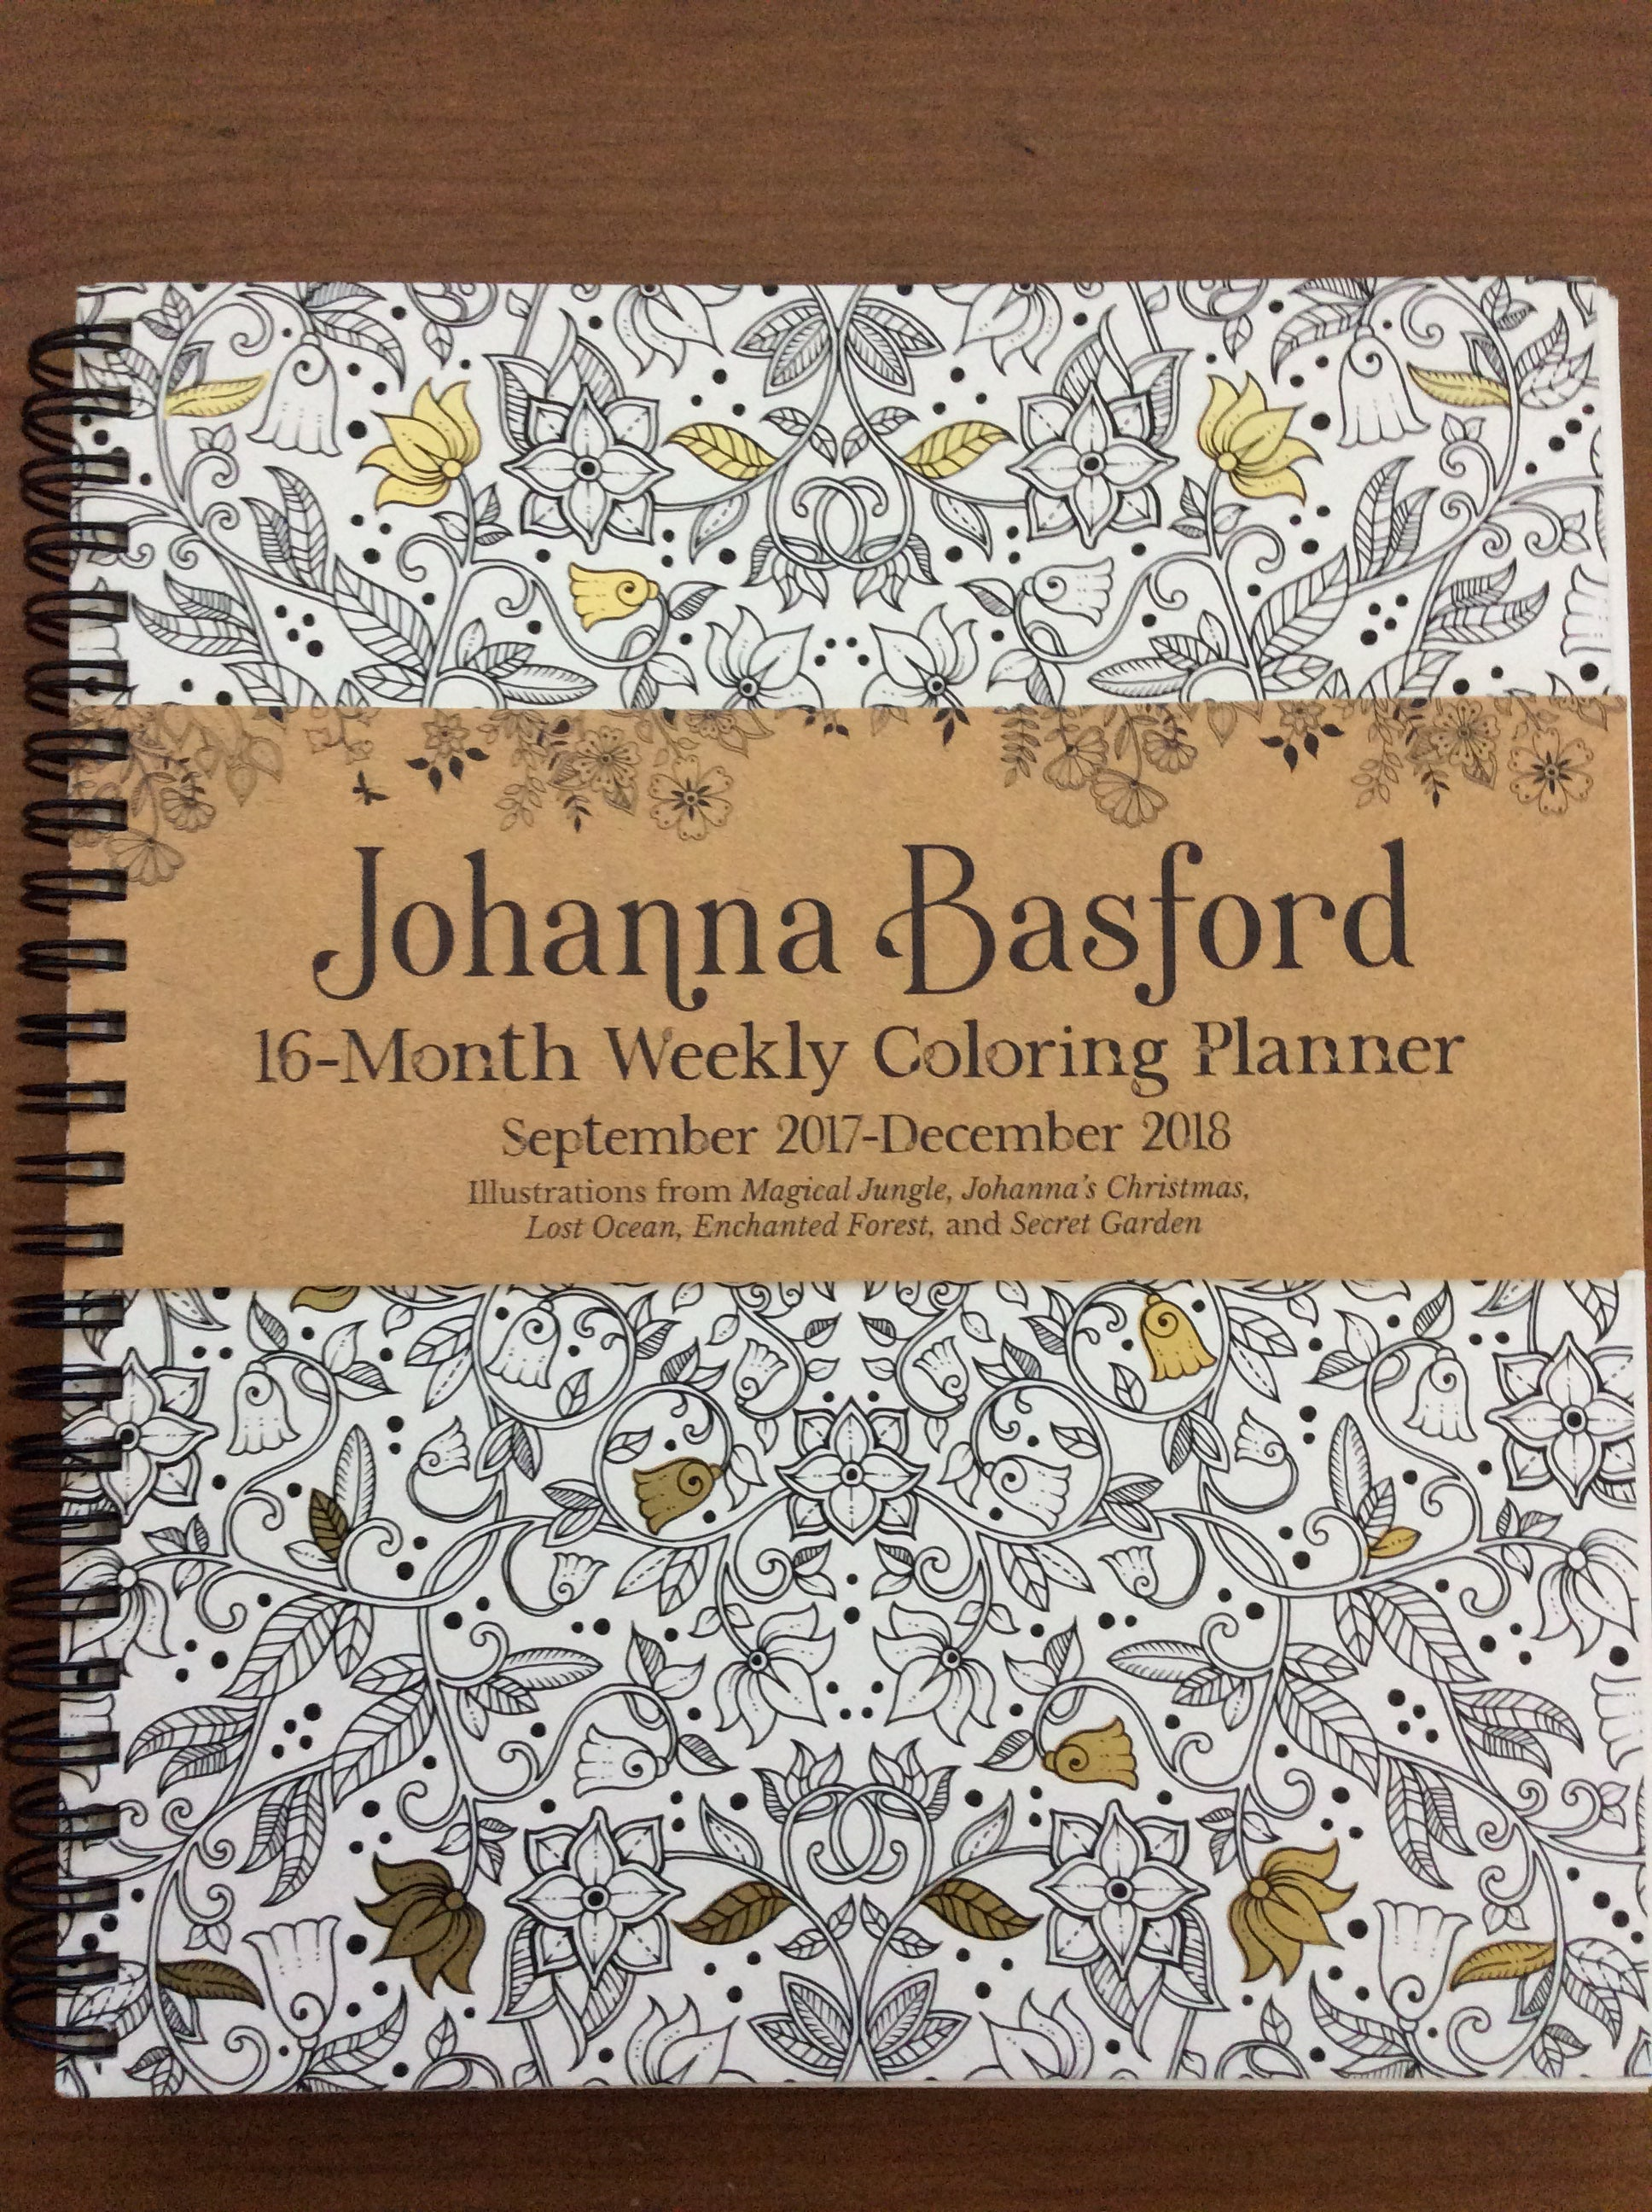 johanna basford 16 month coloring weekly planner sept 2017 dec